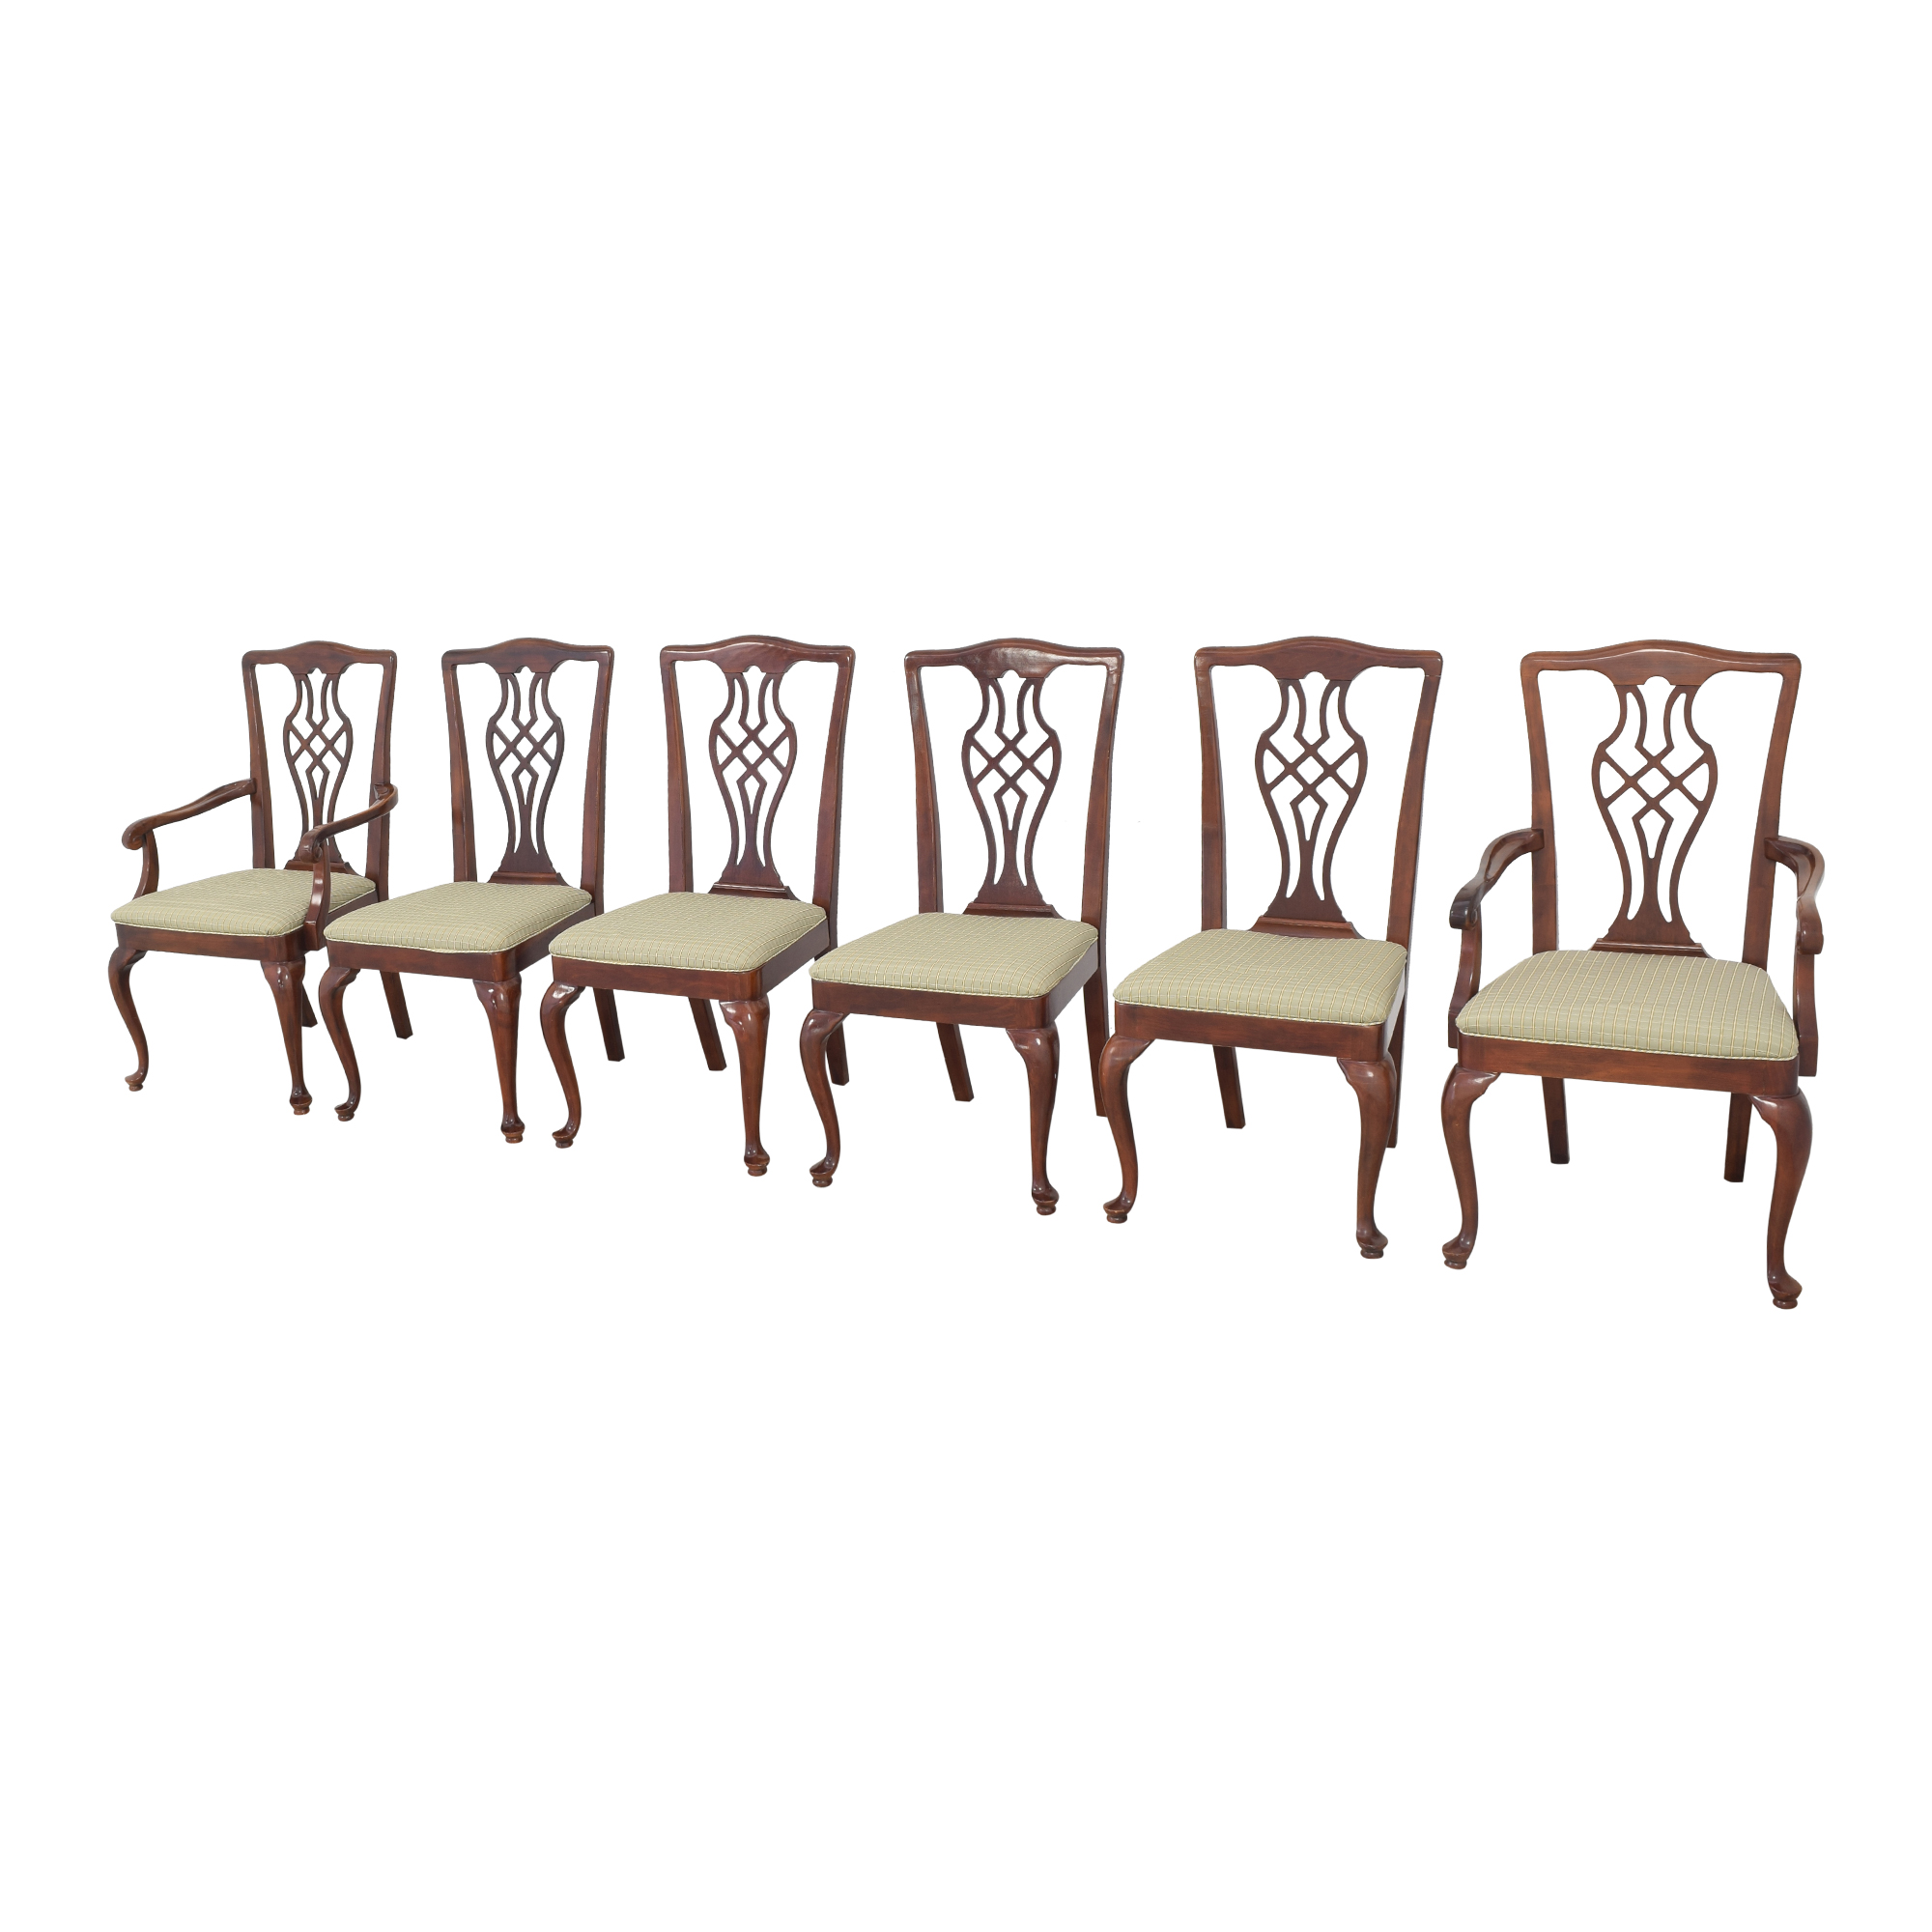 Drexel Upholstered Dining Chairs / Chairs